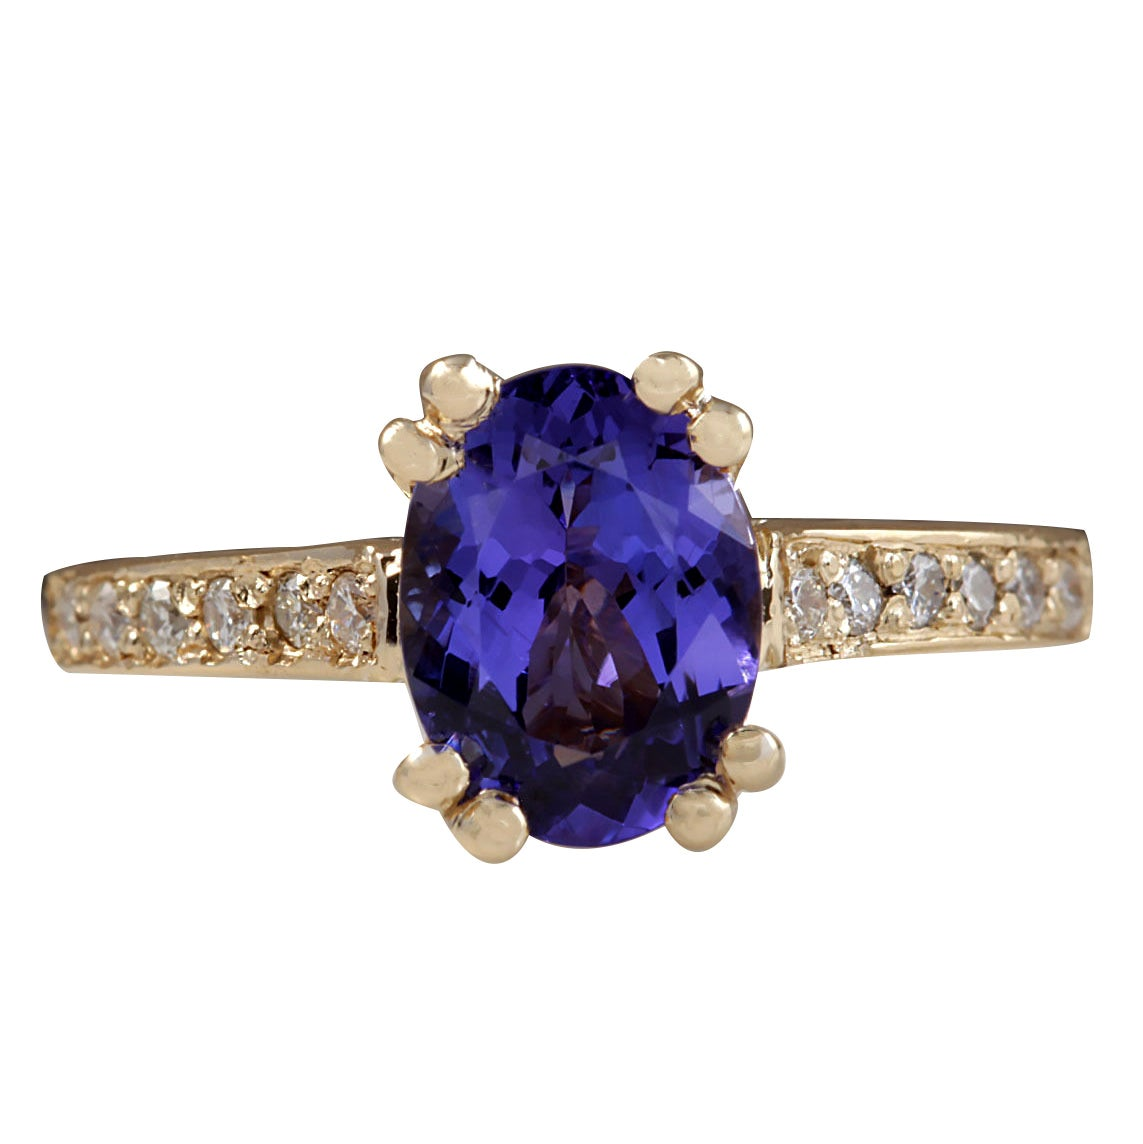 1.96 Carat Natural Tanzanite 18 Karat Yellow Gold Diamond Ring